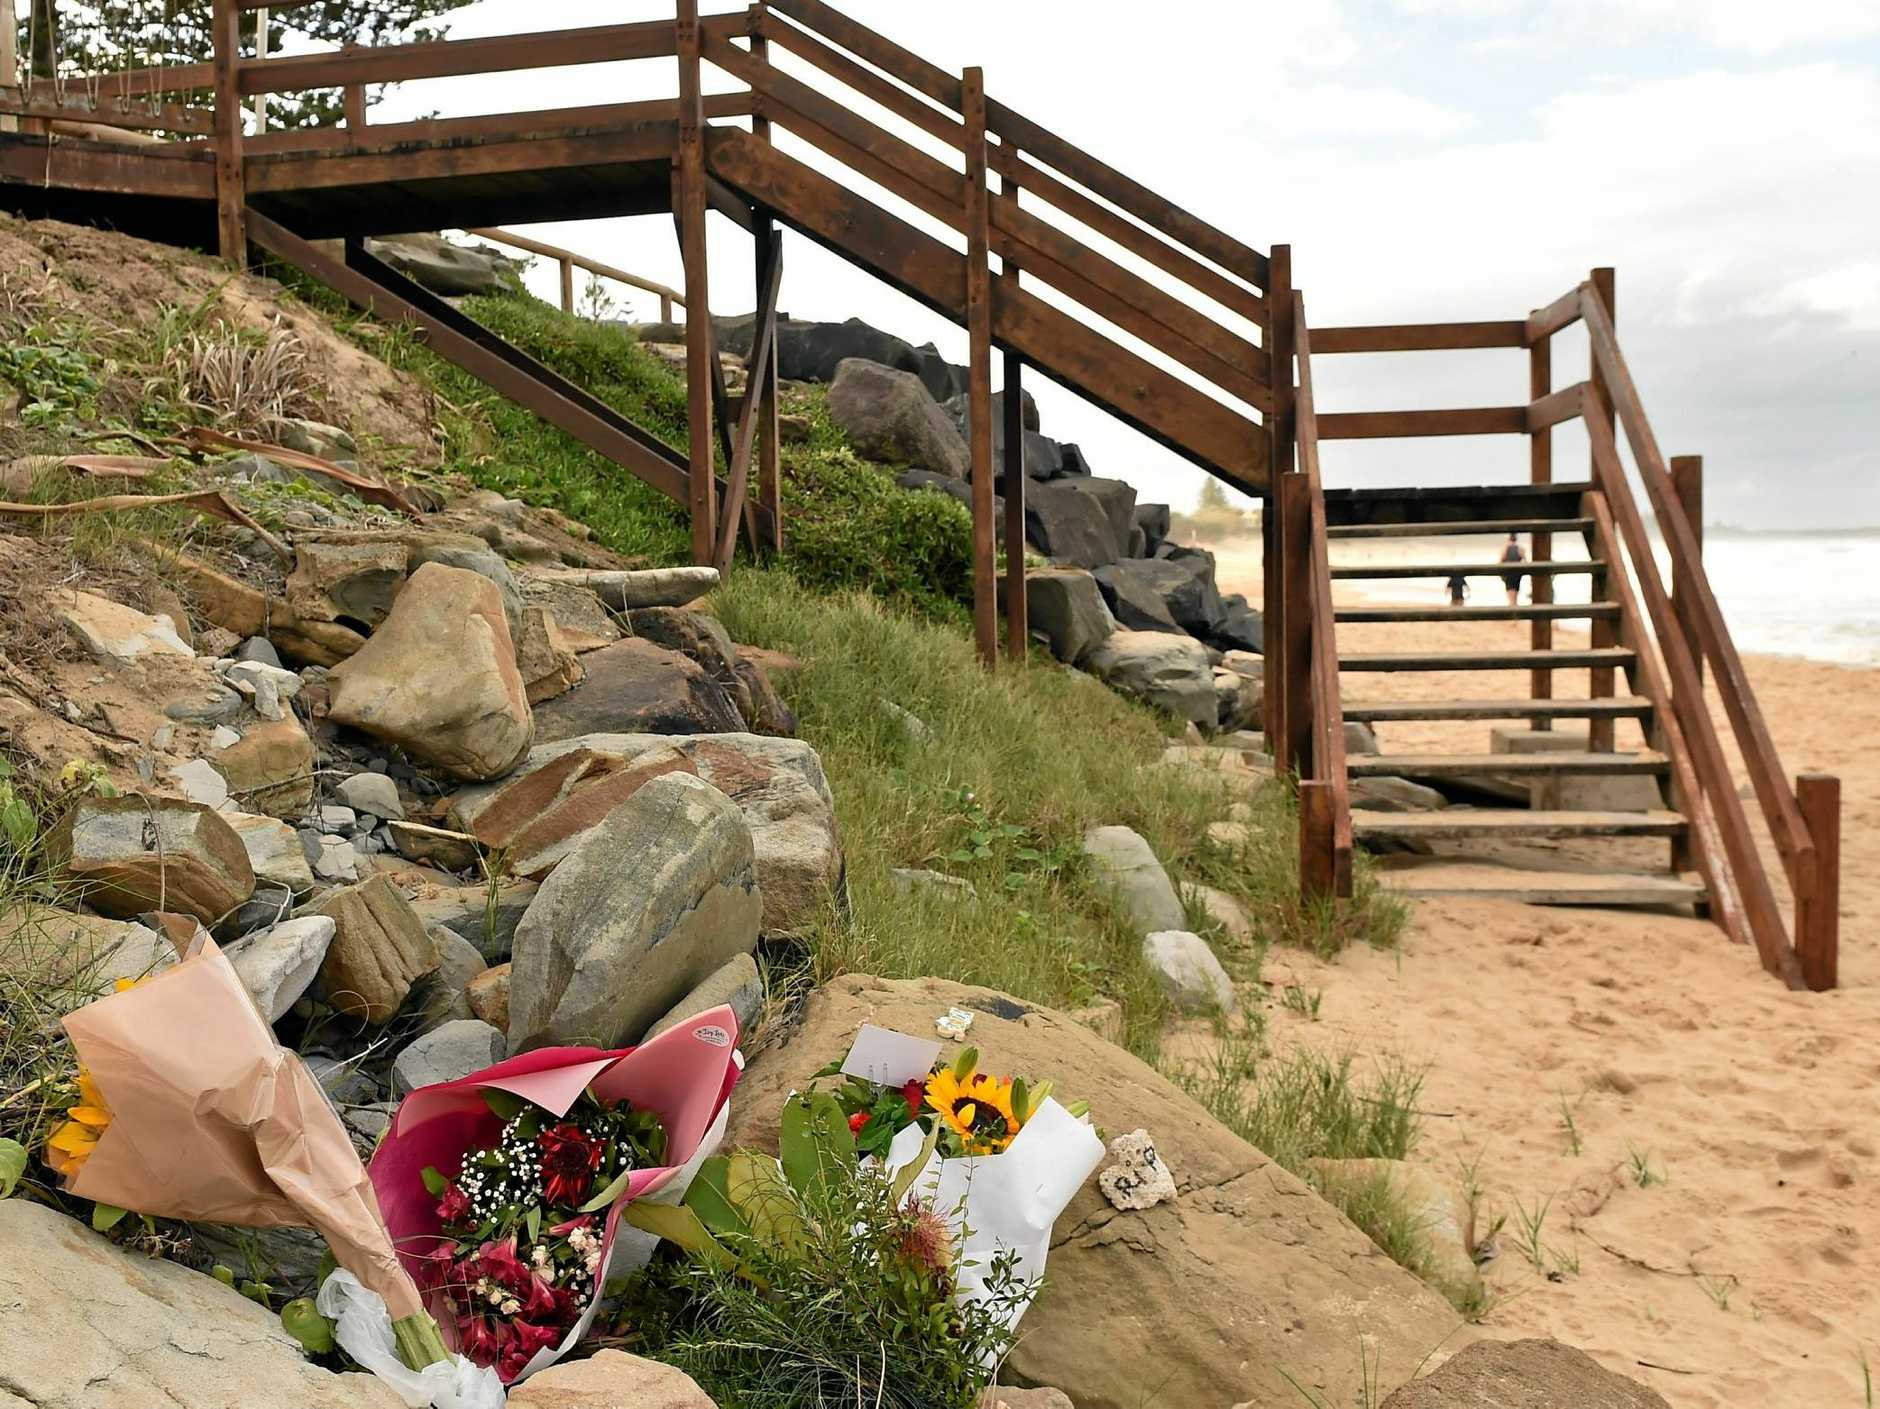 The Dicky Beach surfing community is reeling after the body of a young woman washed ashore. Flowers have been left at the bottom of the staircase in her remembrance.